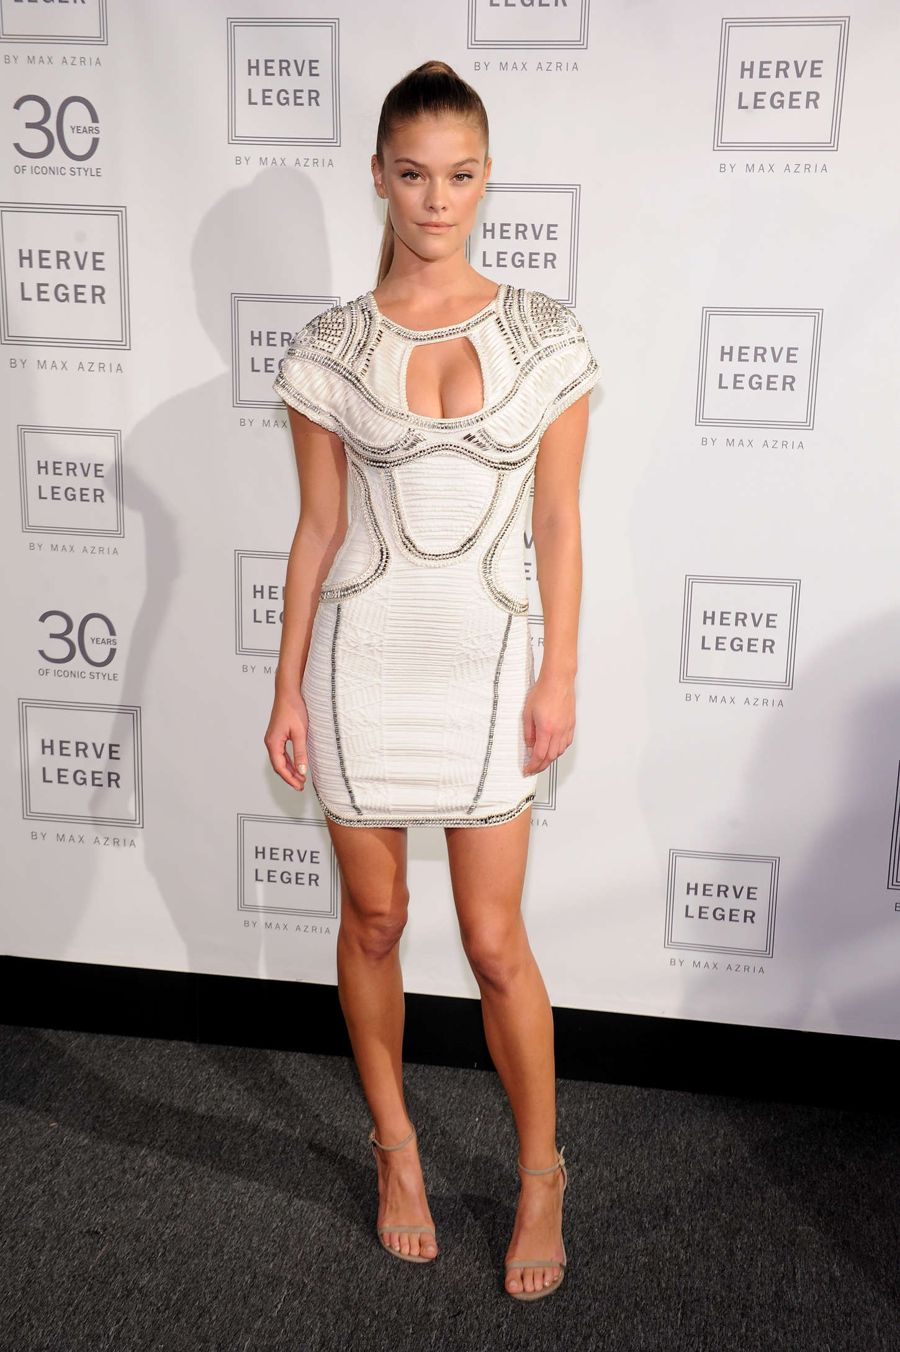 Nina Agdal - Herve Leger by Max Azria Fashion Show